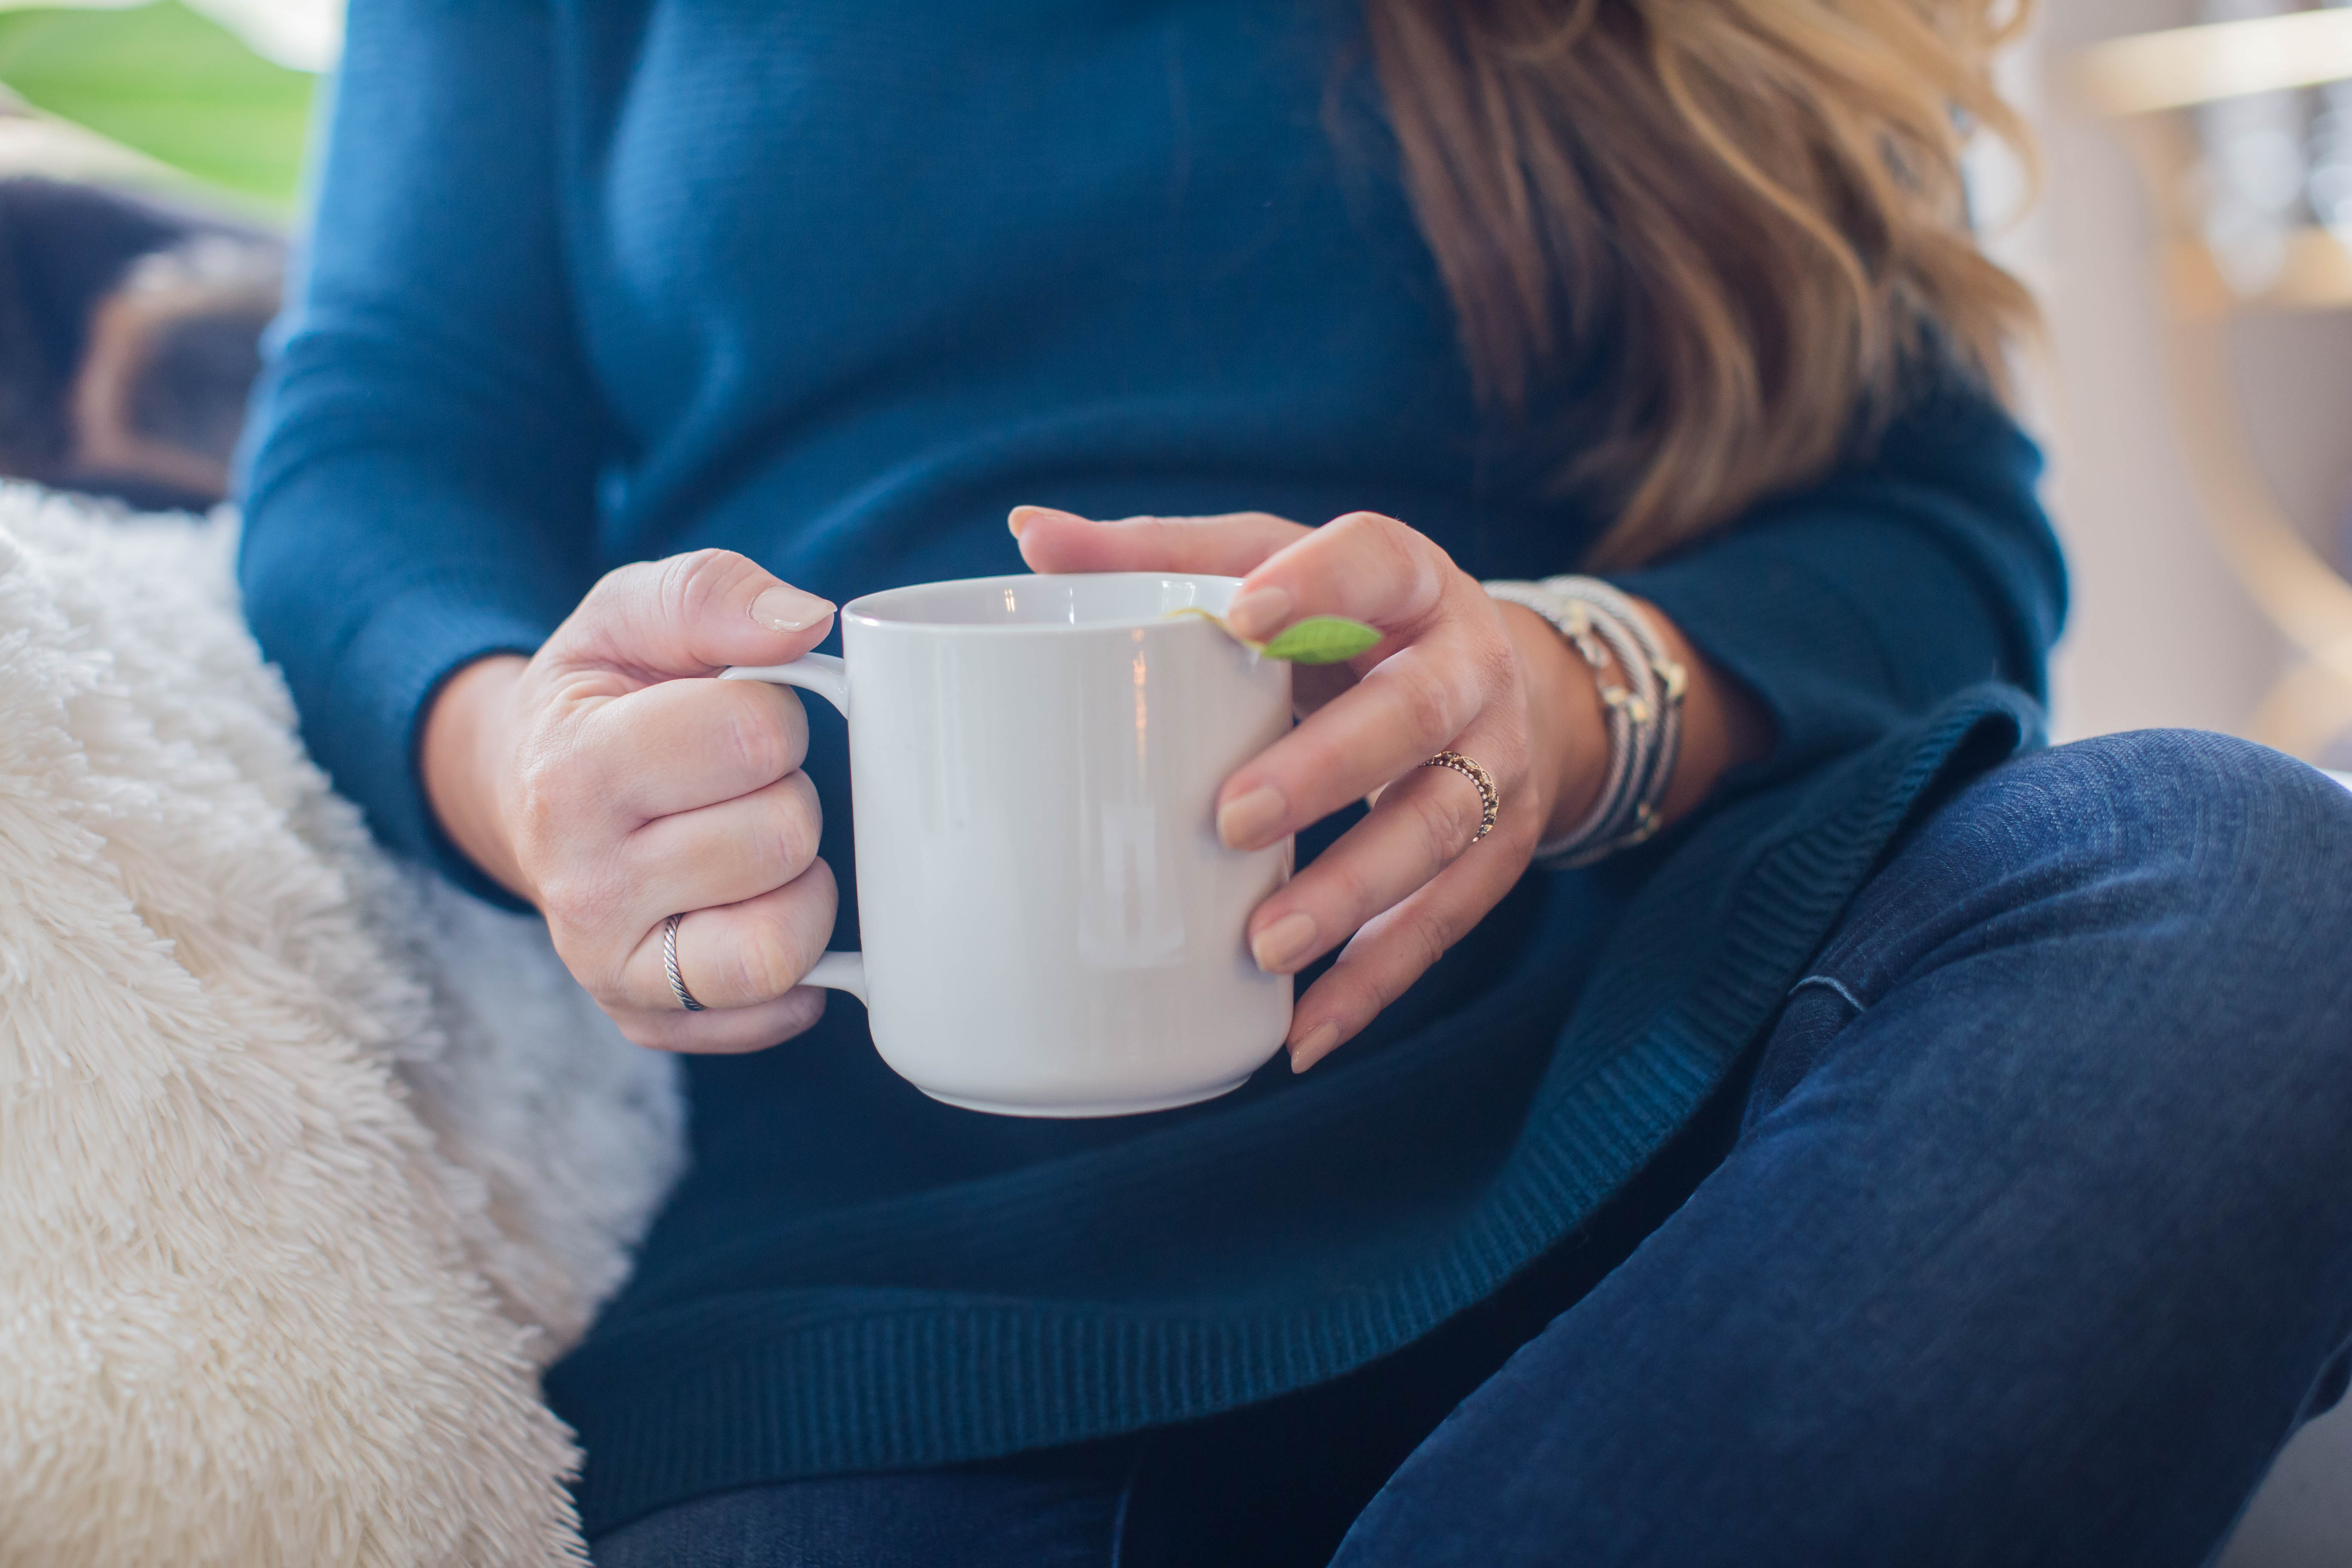 5 Tips for Staying Healthy this Winter - 5 Ways to Stay Healthy this Winter by North Carolina lifestyle blogger Coffee Beans and Bobby Pins